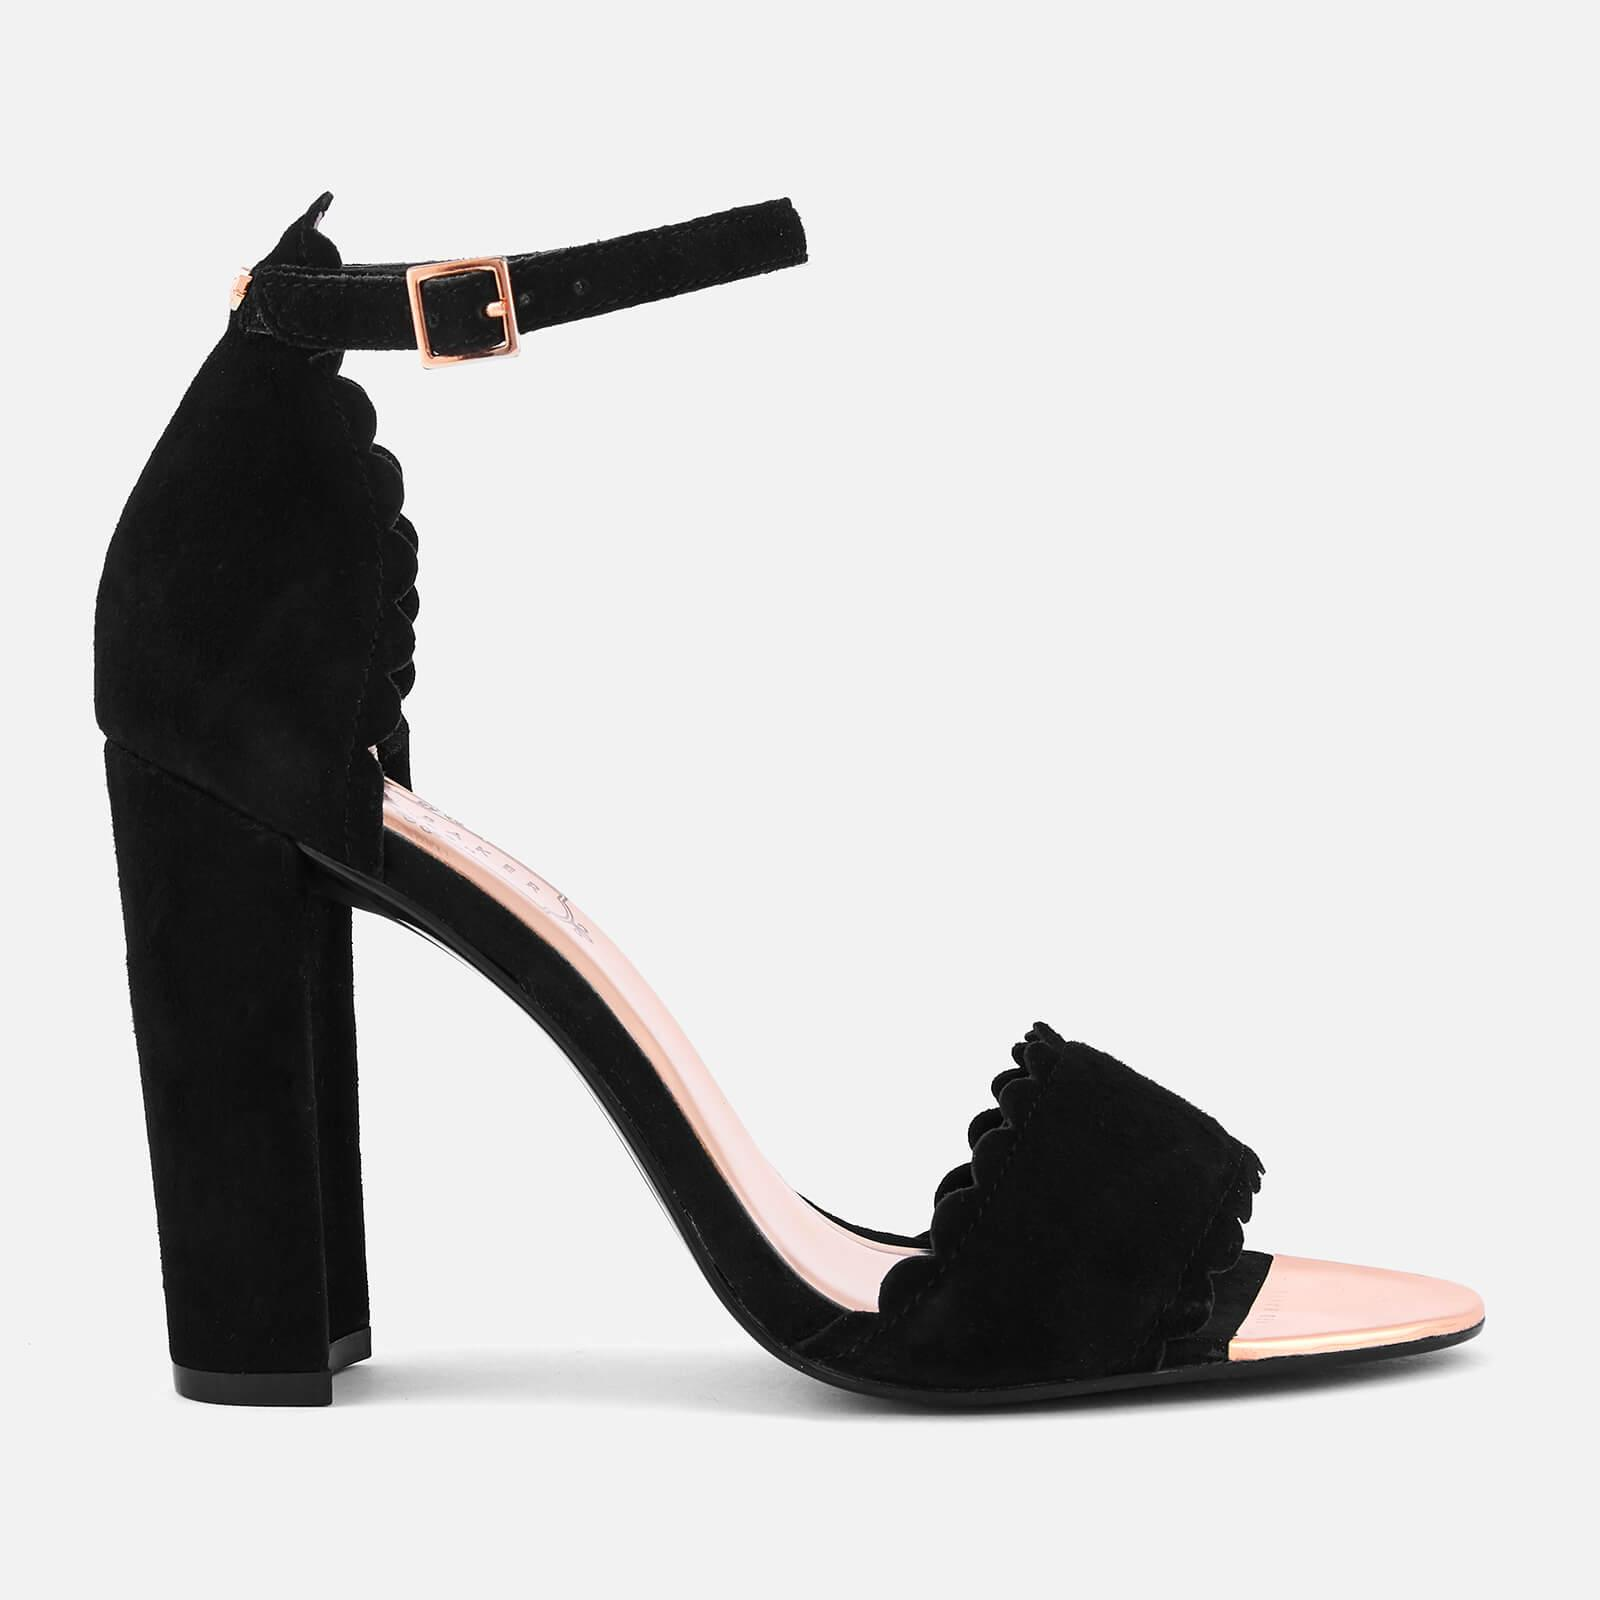 a9f70433c Ted Baker Raidha Suede Barely There Block Heeled Sandals in Black - Lyst